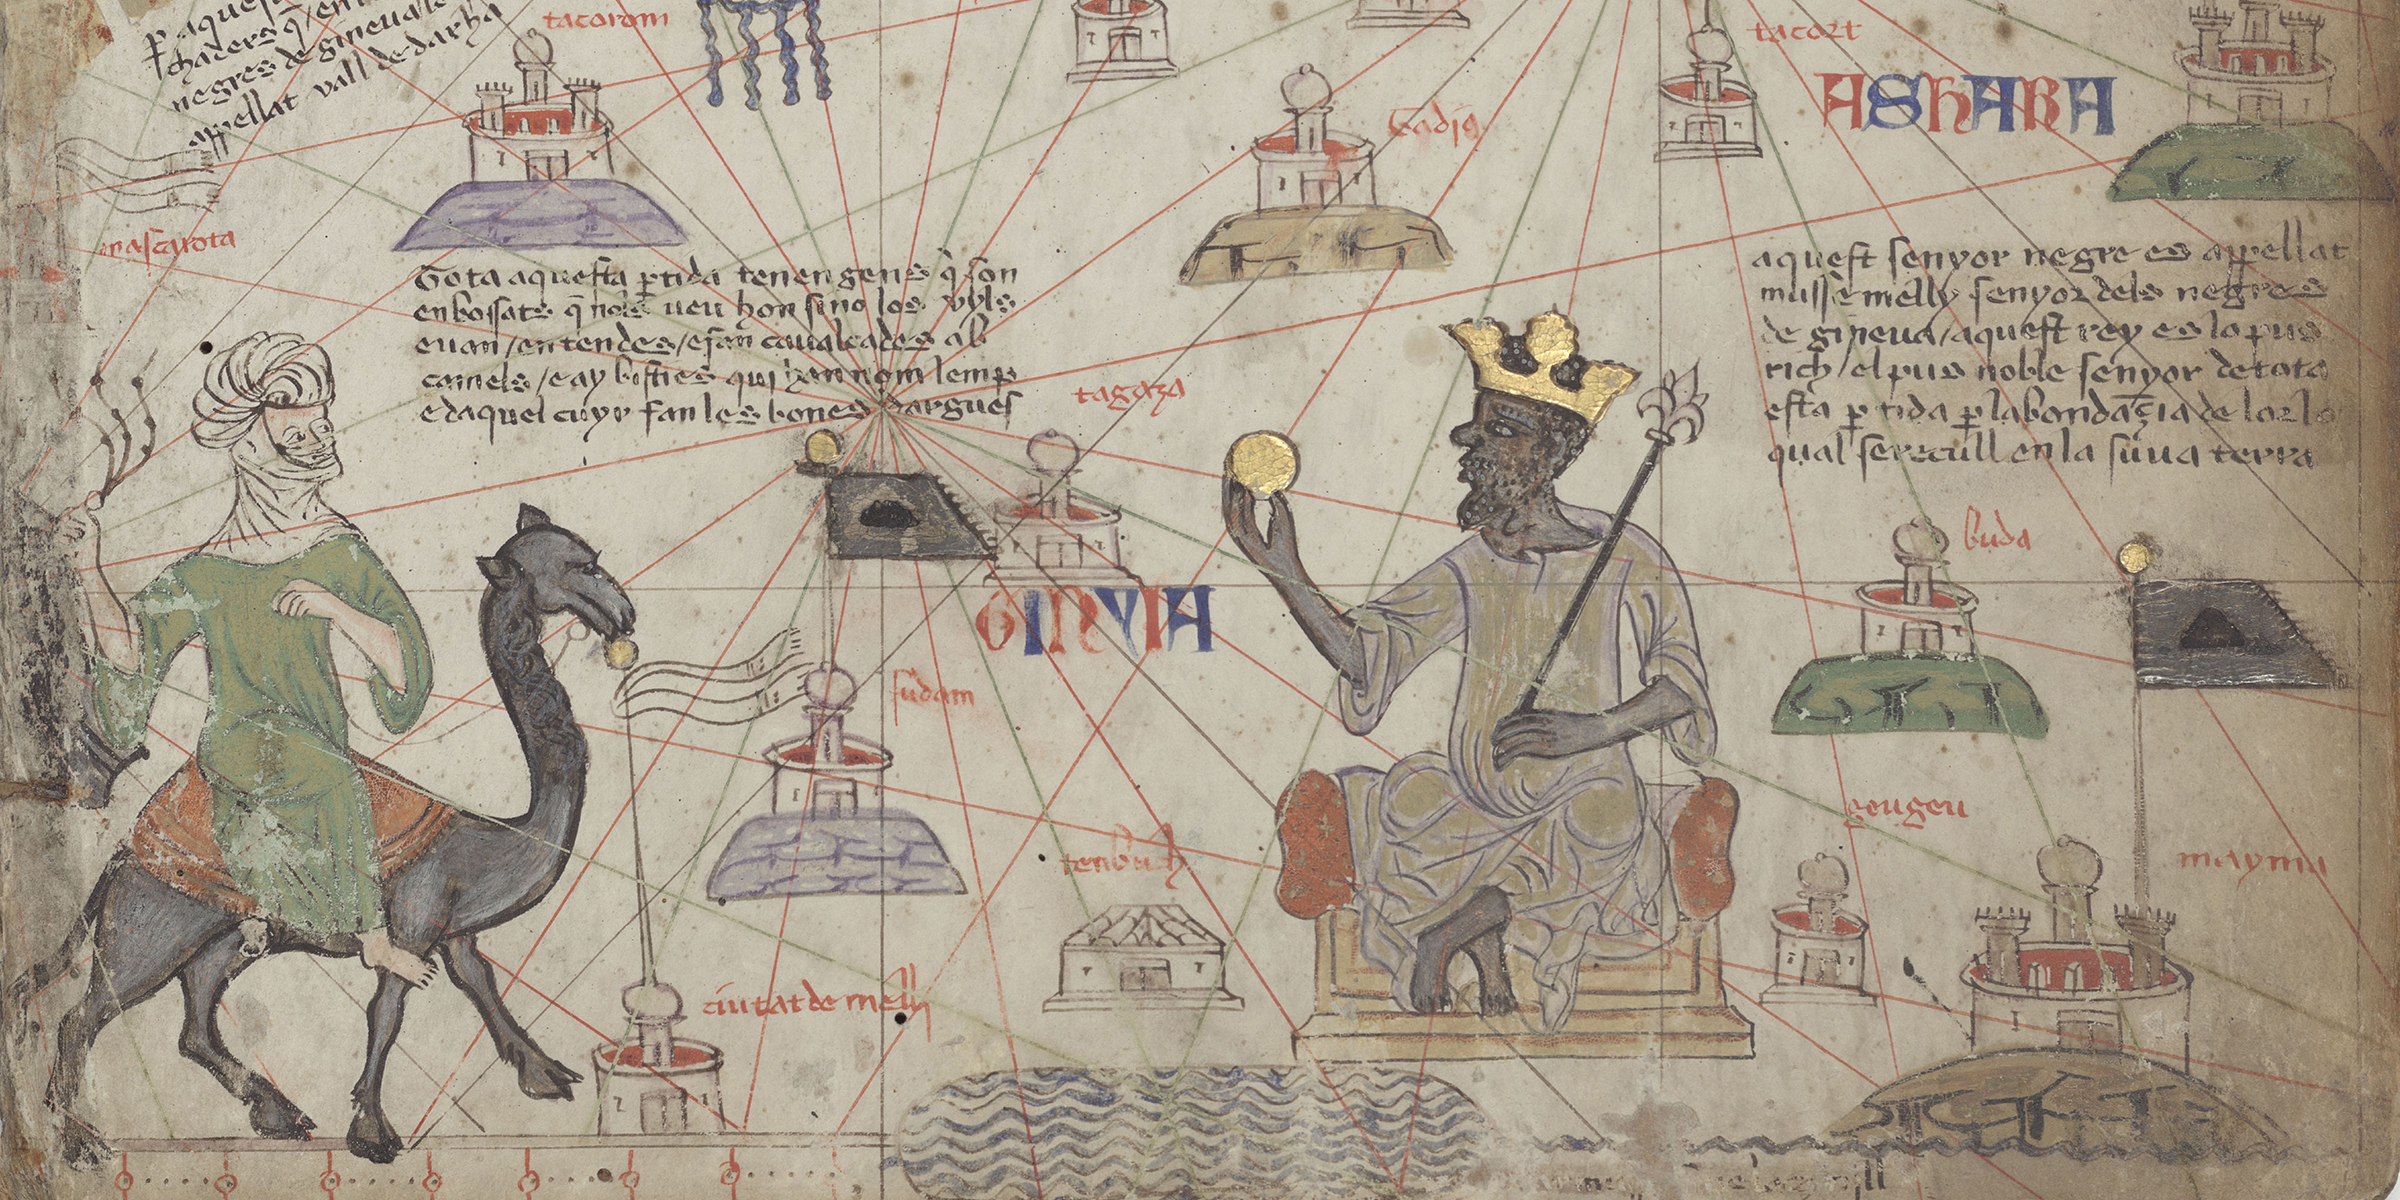 Mansa Musa of Mali holding a gold nugget, detail from Atlas of Maritime Charts, by Abraham Cresques, c. 1375. Bibliothèque Nationale de France, Department of Manuscripts.